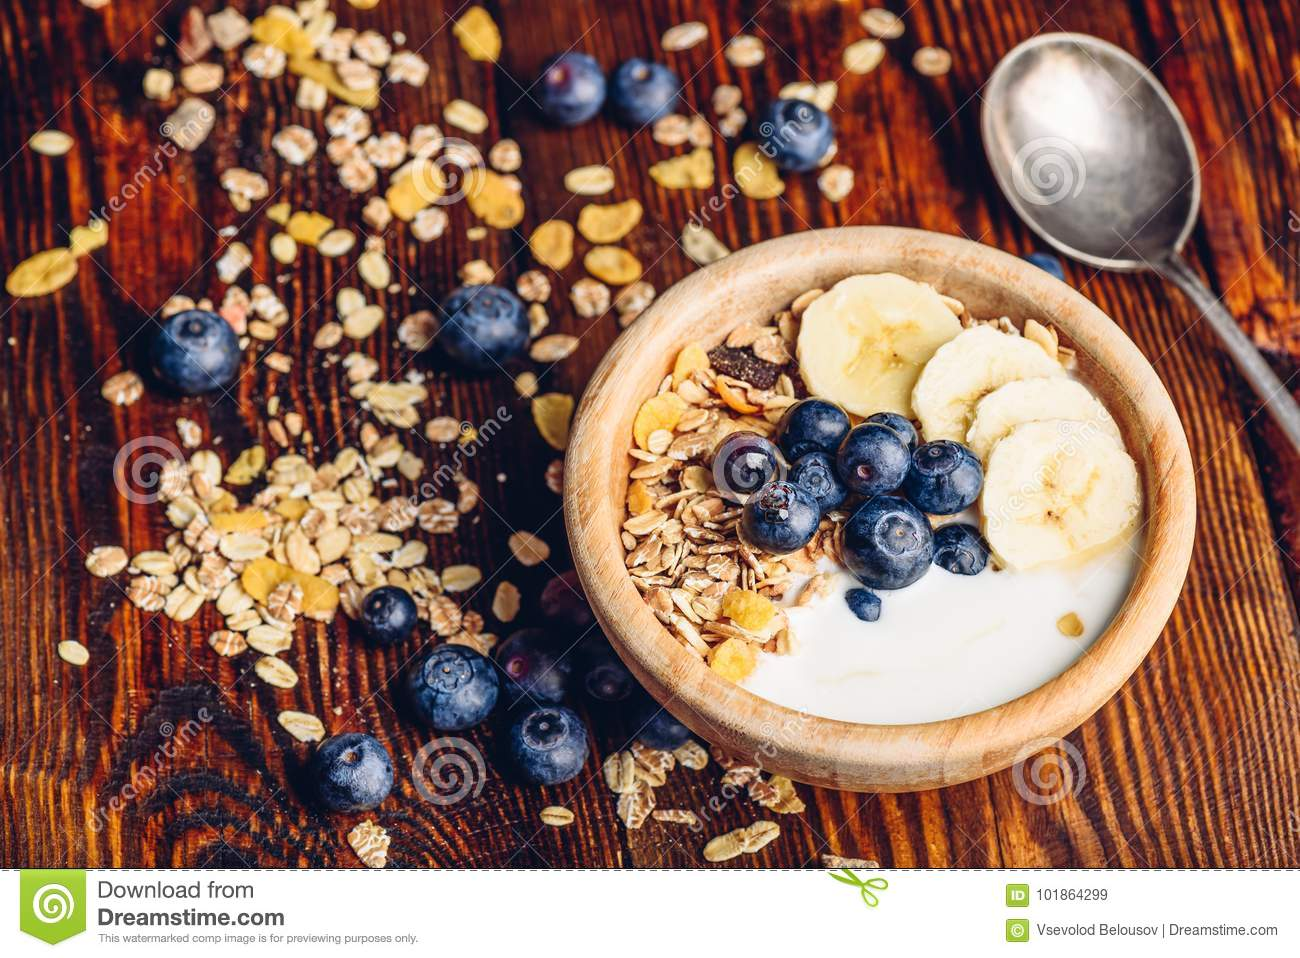 Bowl of Granola, Banana, Blueberry and Yoghurt.